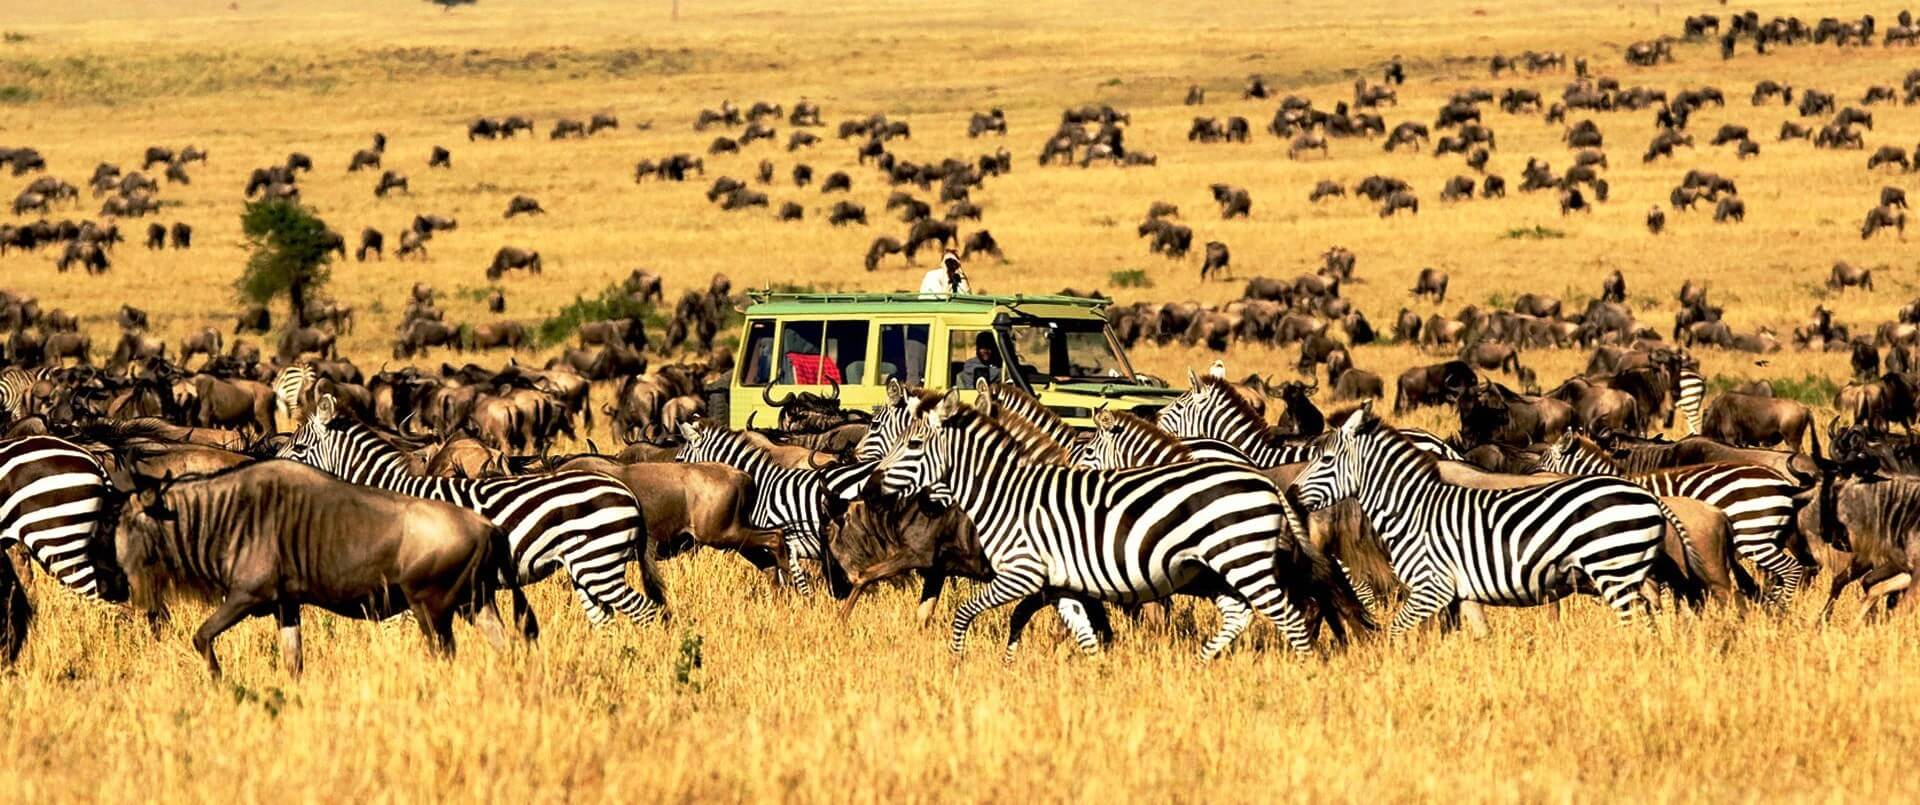 Serengeti National Park >> 10 Reasons To Visit Serengeti National Park